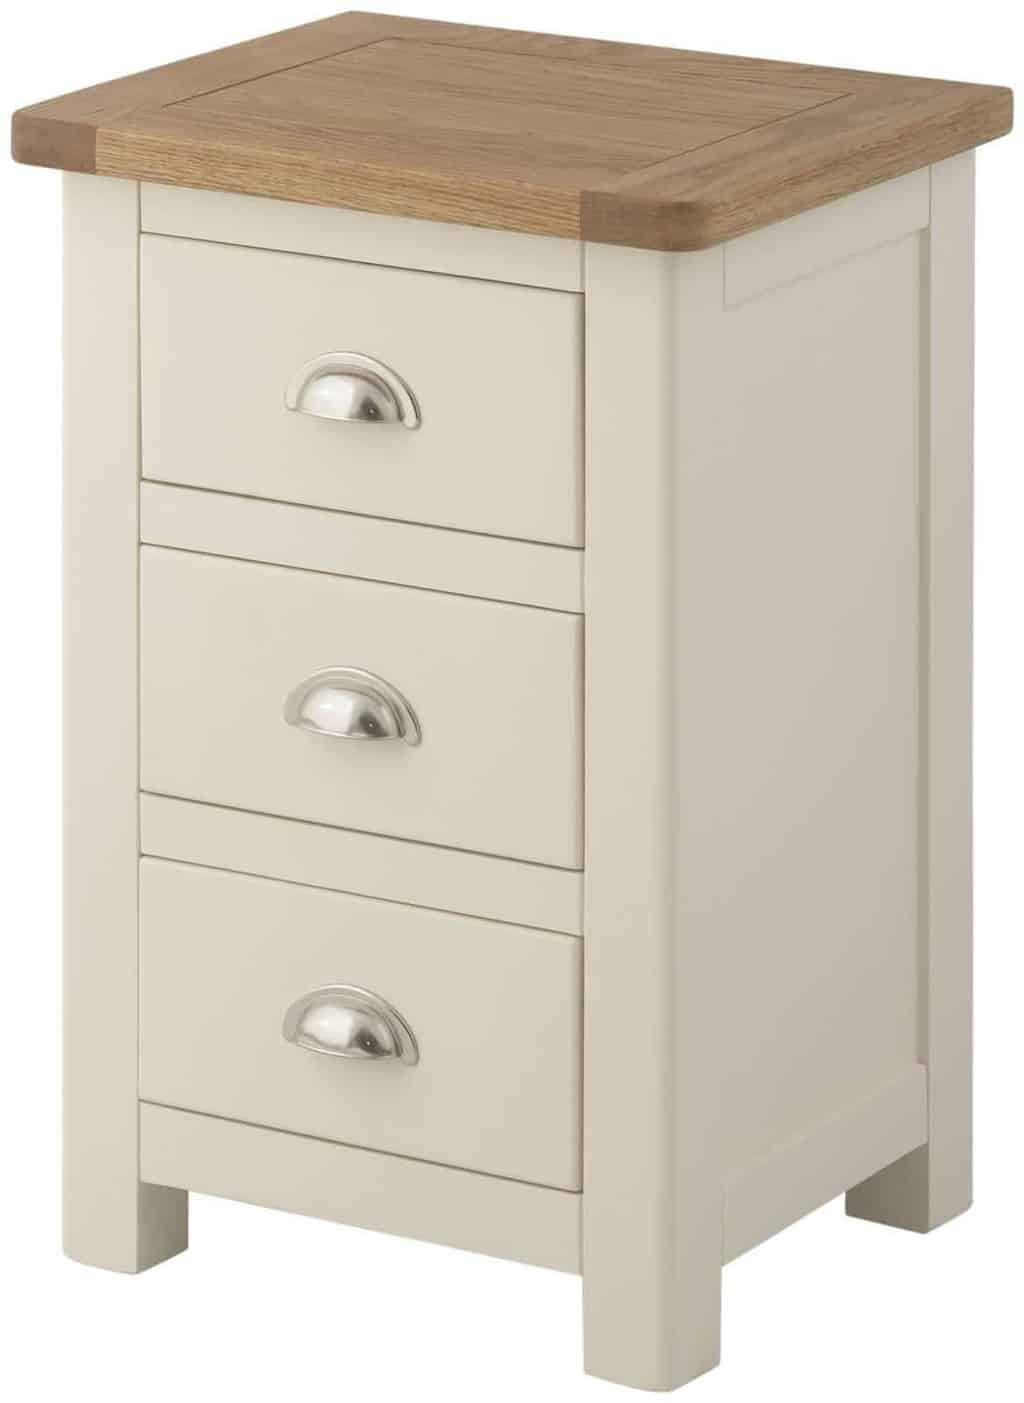 Cream Bedside Tables: Cream Colour Painted Oak 3 Drawer Bedside Cabinet Table